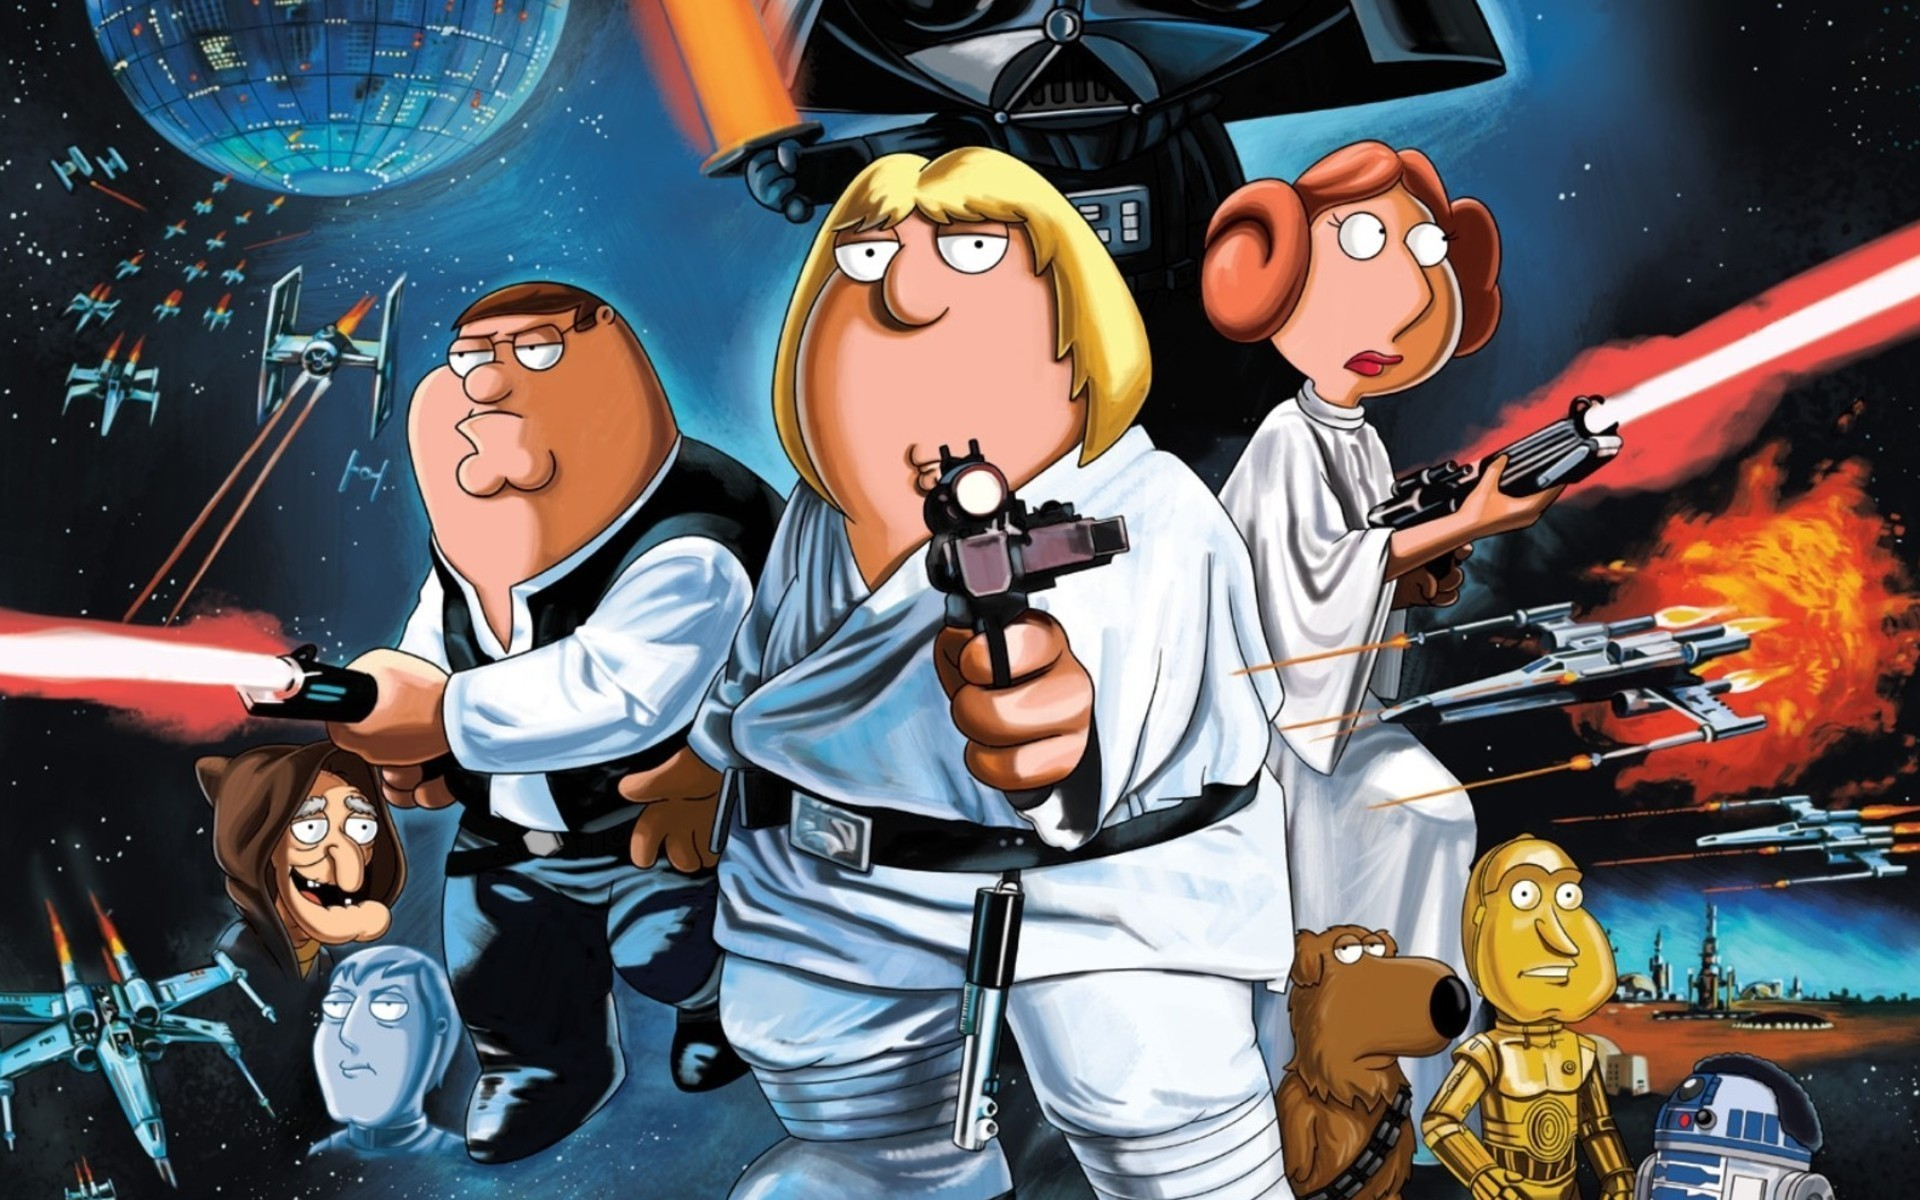 1920x1200 Family Guy images Blue Harvest HD wallpaper and background photos